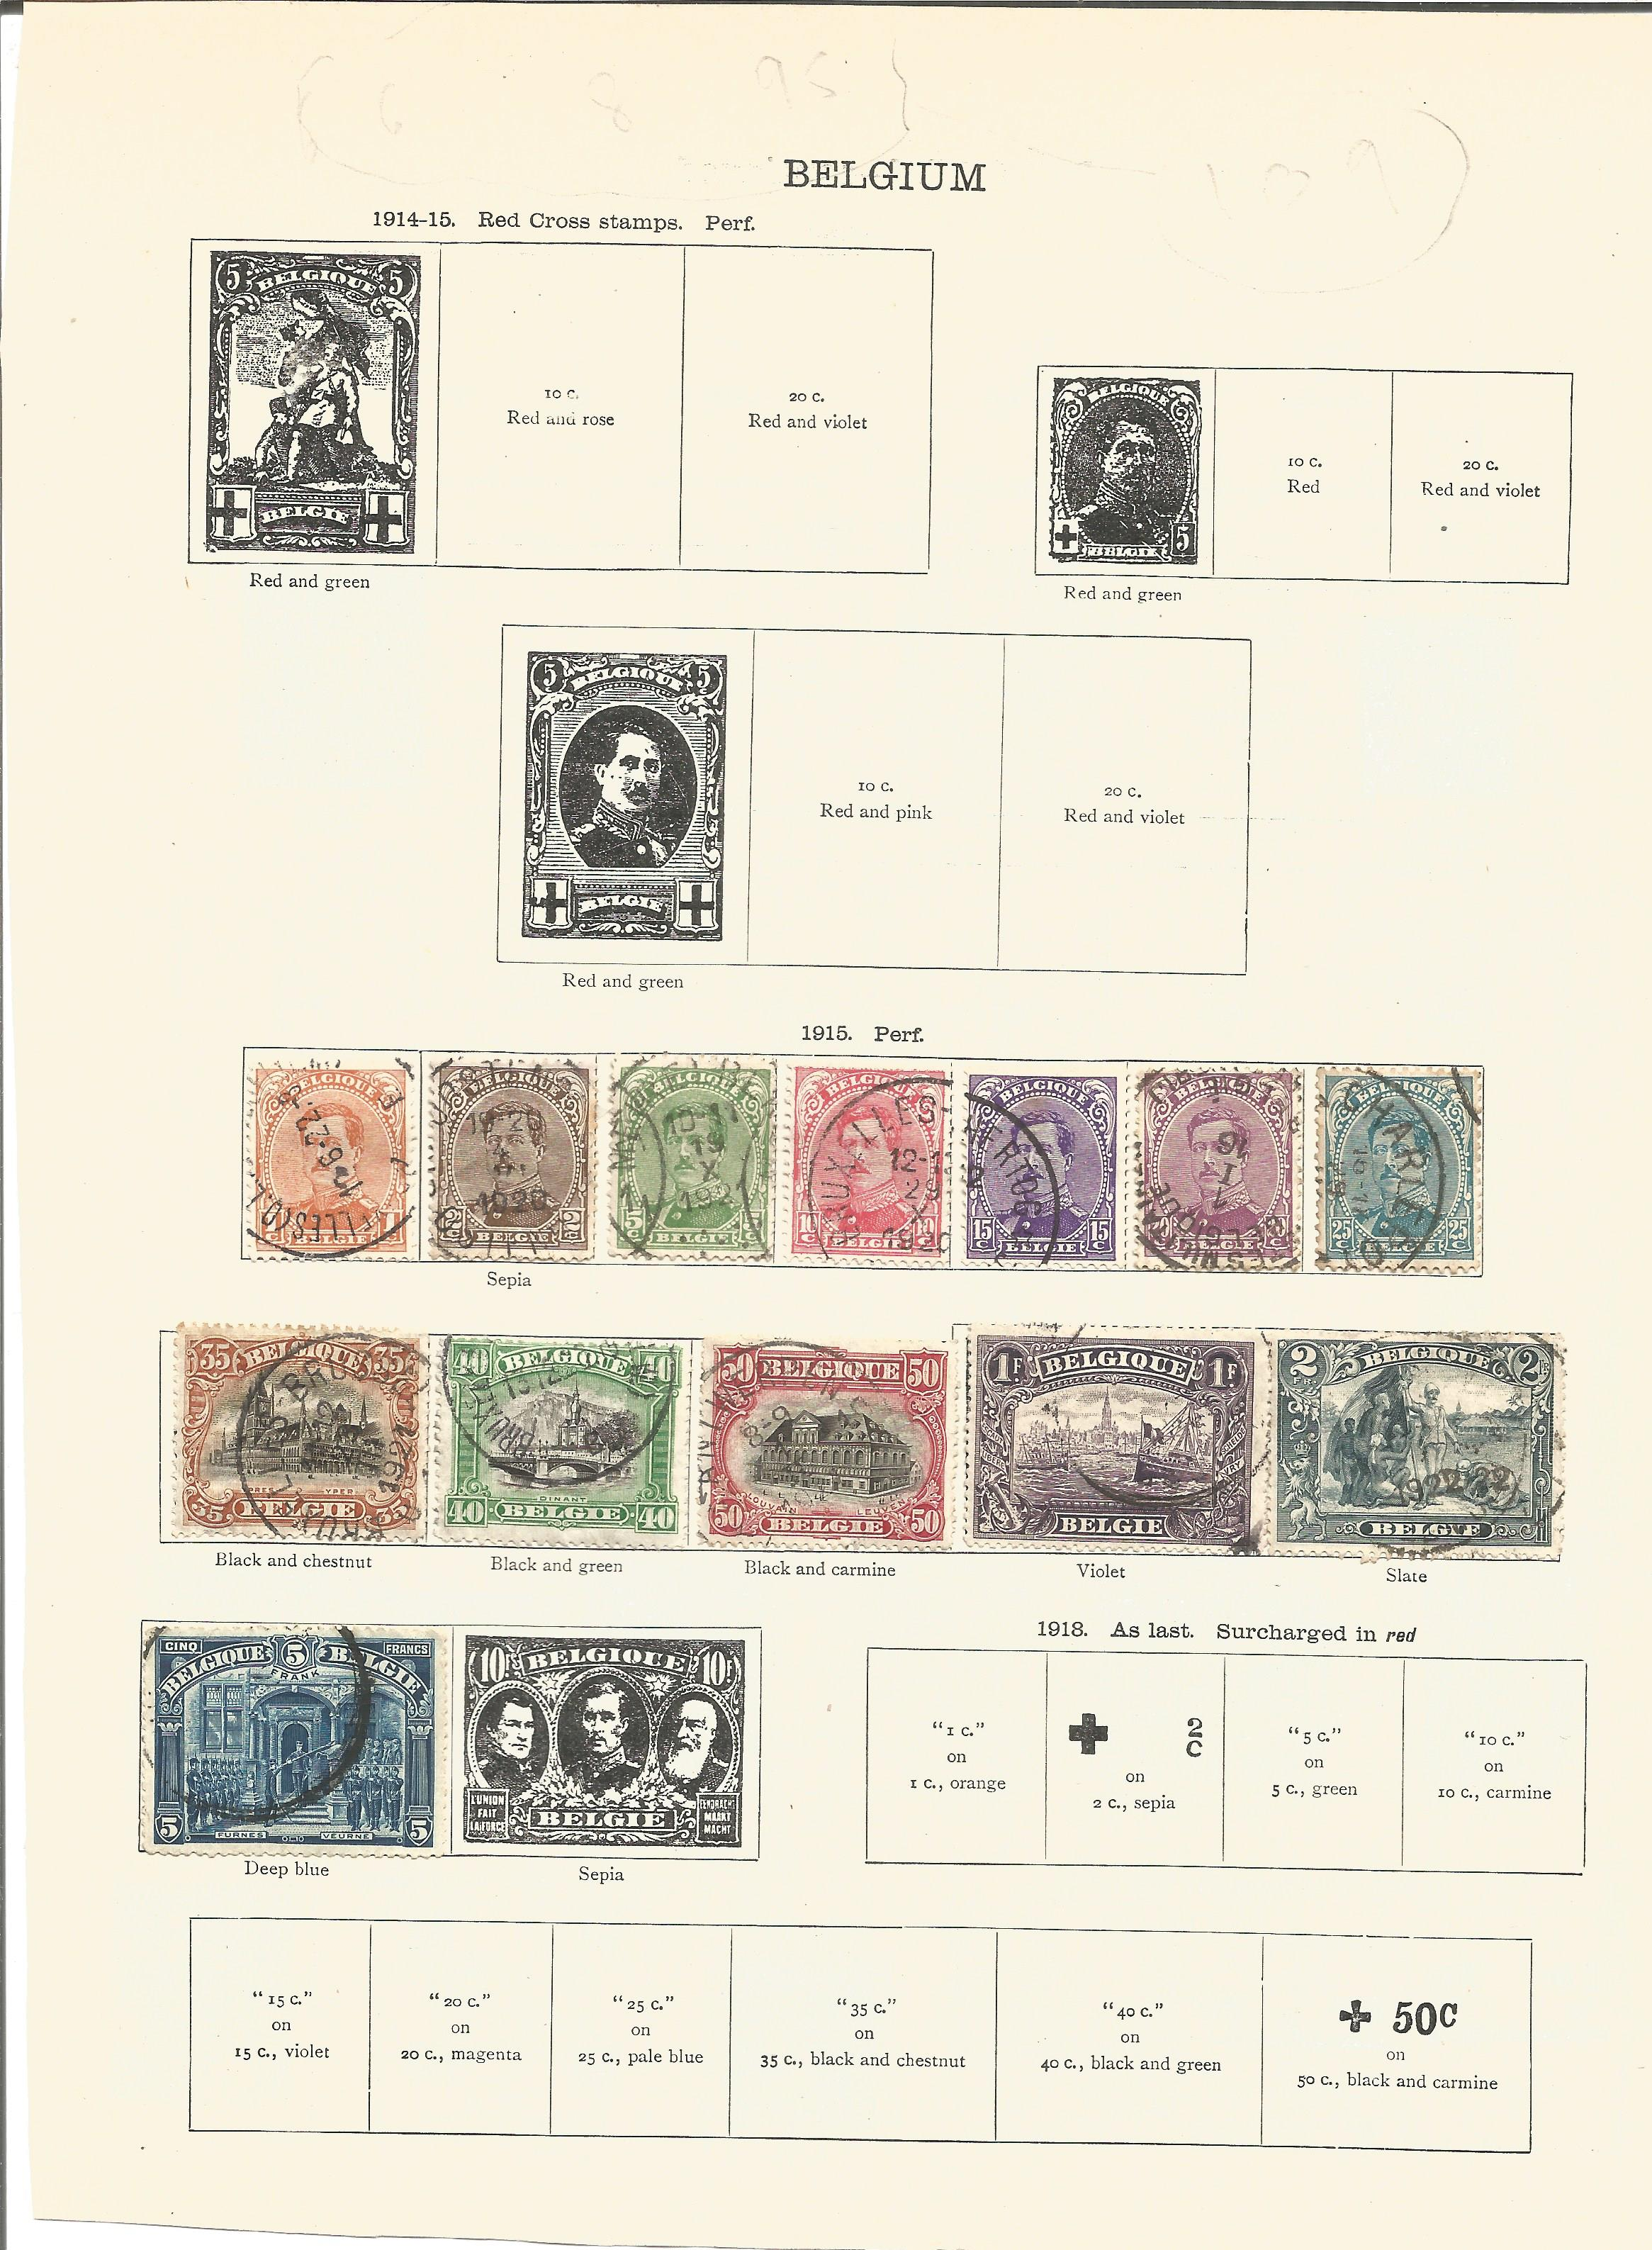 8 loose album pages of stamps from around 1920 including Belgium and Belgian Congo. Good